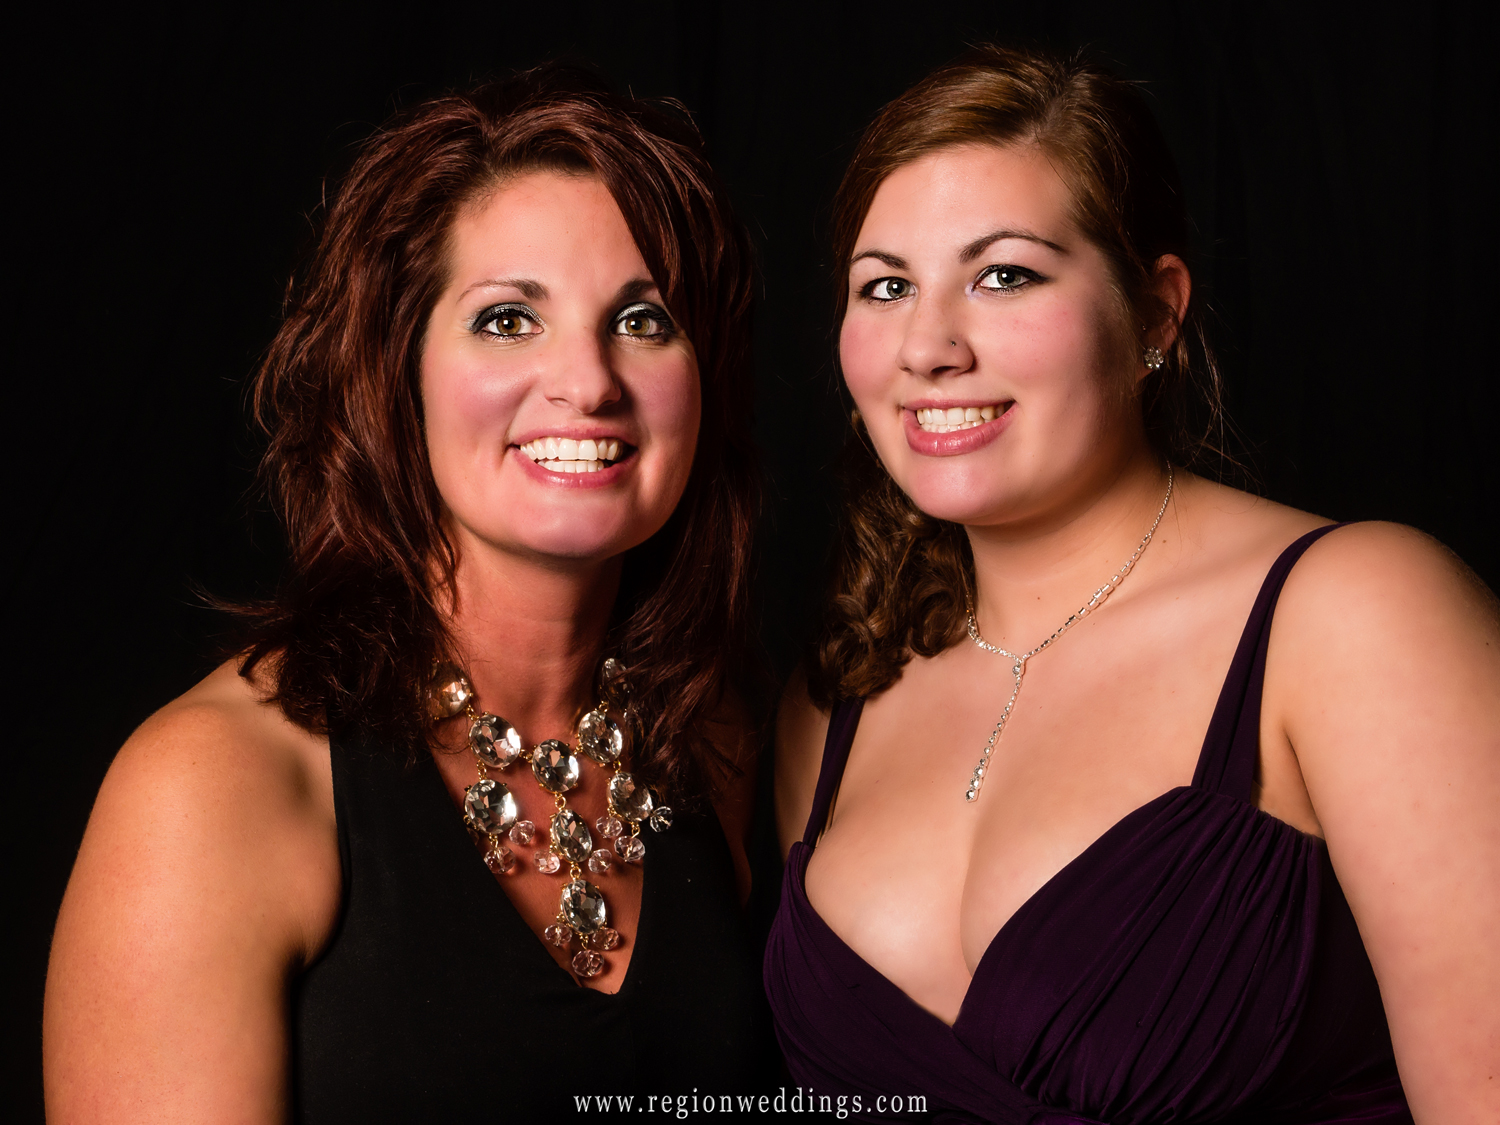 A mother and daughter pose for a portrait while attending a friends wedding reception at The Dream Palace in Lynwood, Illinois.